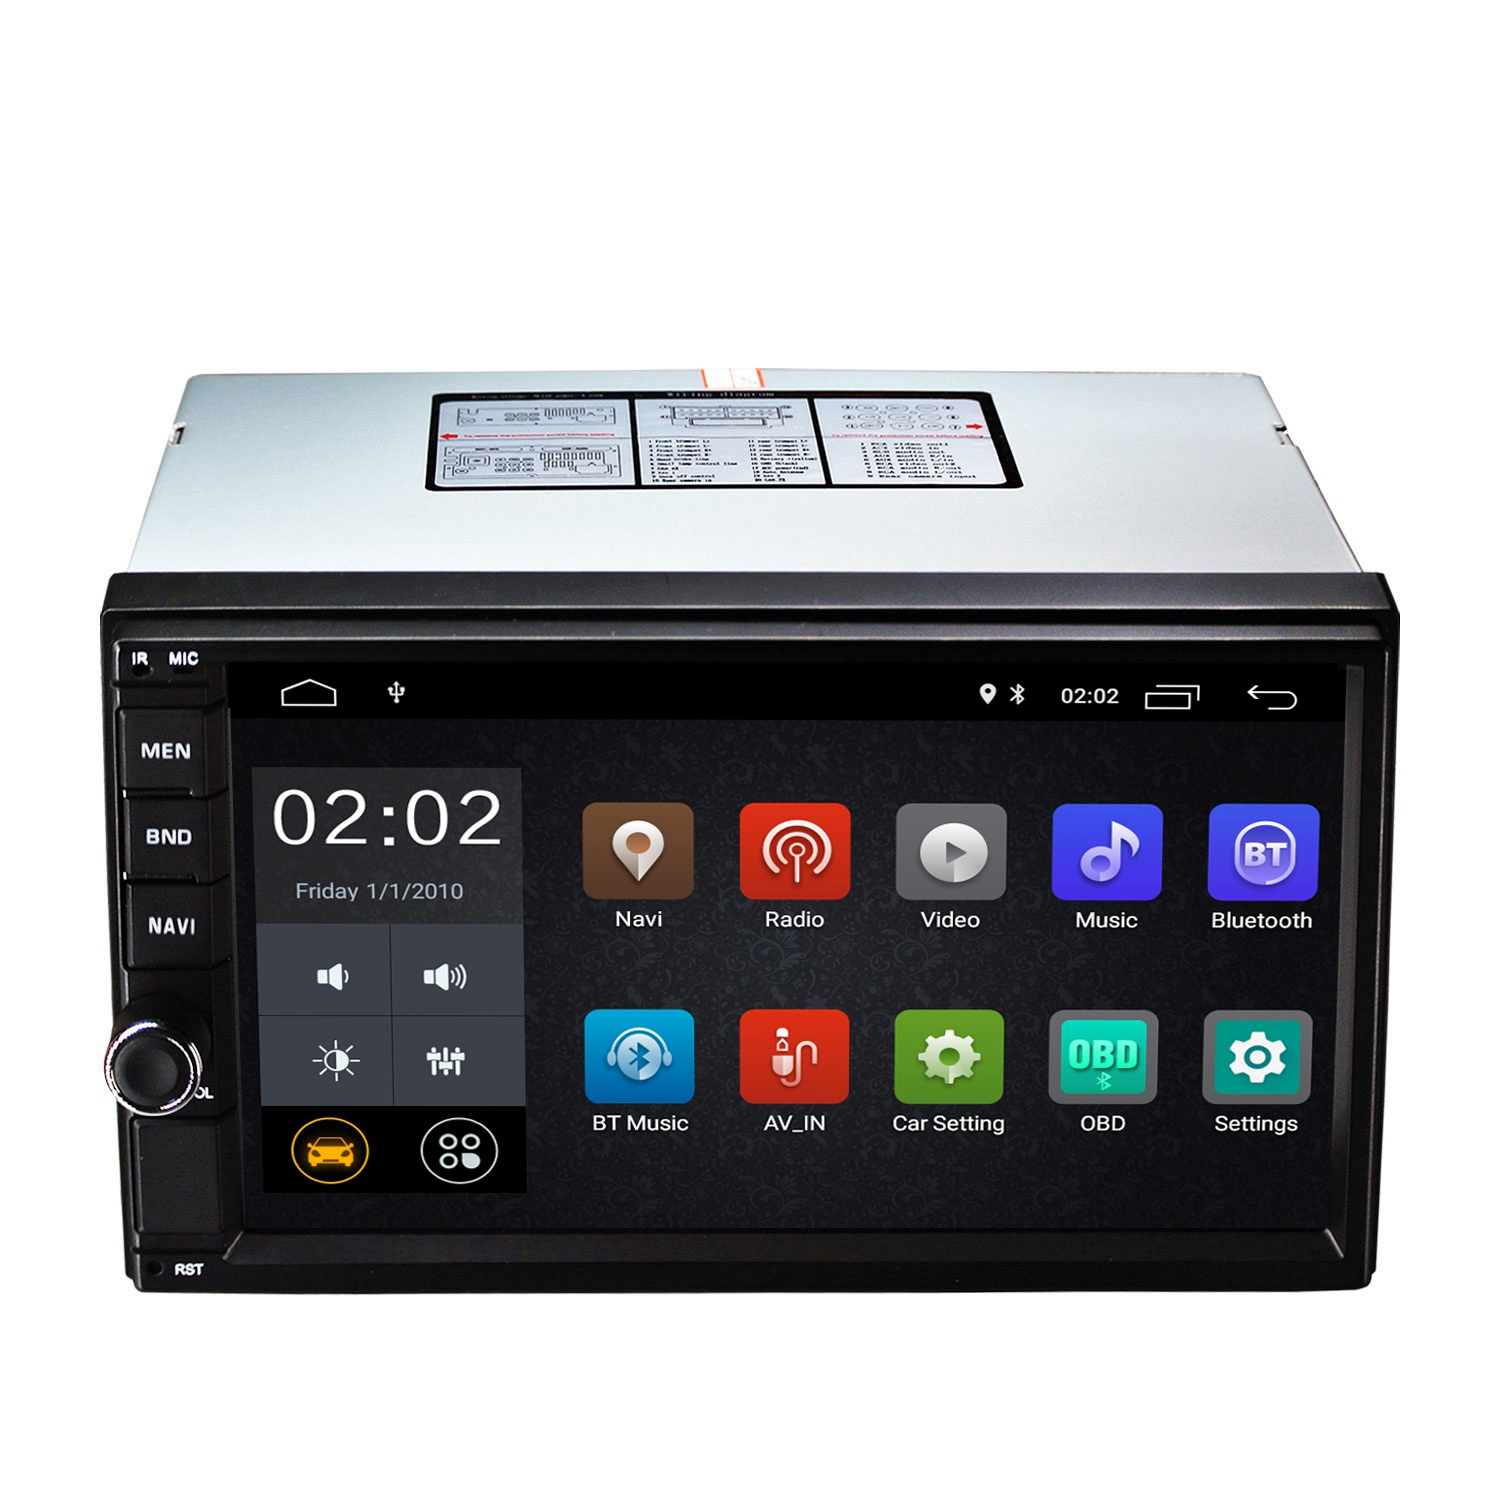 NEW-Android 8.1 2 Din Car 7 Inch Hd Press Screen Player Quad Core 2G Running Memory + 16G Flash Gps Navigation Stereo PlayerNEW-Android 8.1 2 Din Car 7 Inch Hd Press Screen Player Quad Core 2G Running Memory + 16G Flash Gps Navigation Stereo Player